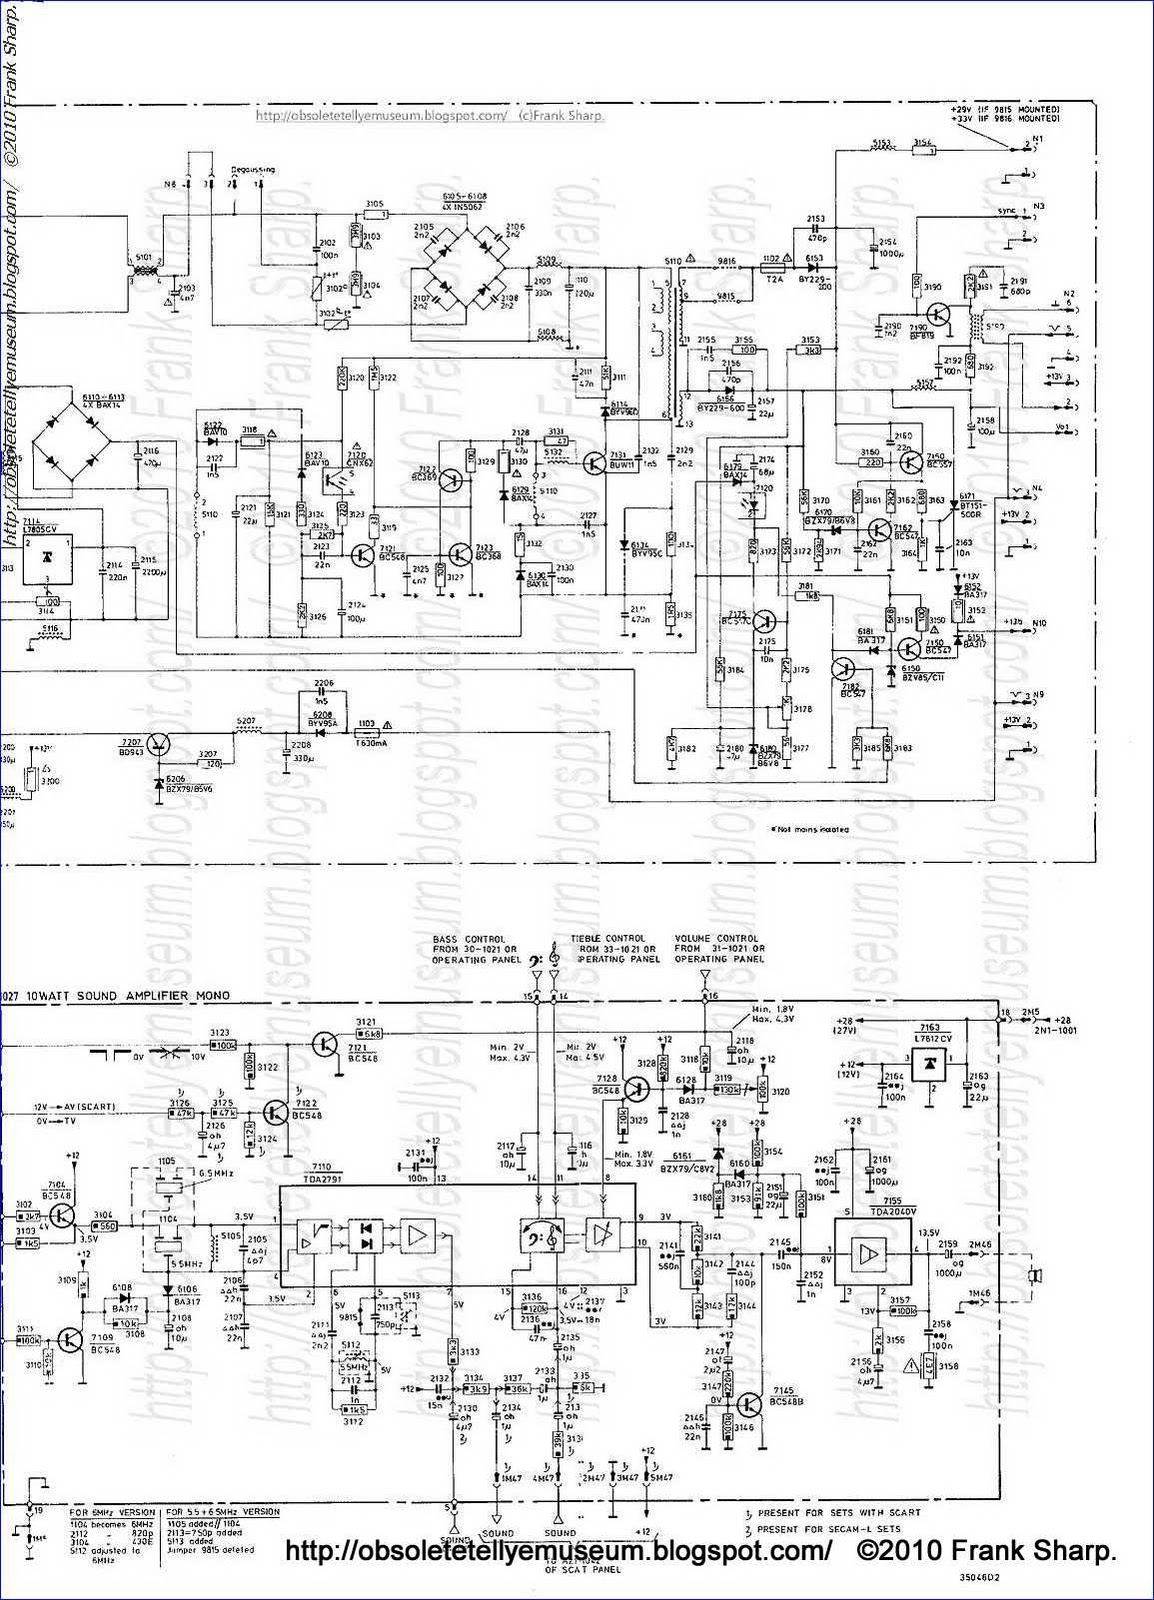 keyboard schematic with Bang Olufsen Beovision Mx1500 Chassis on Ps2 mouse and basic st   puter together with Mac 512klogicboard moreover Keyboard Not Working On Raspberry Pi 2 Model B furthermore TRS80 Model 100 further Ldf9810st 10.